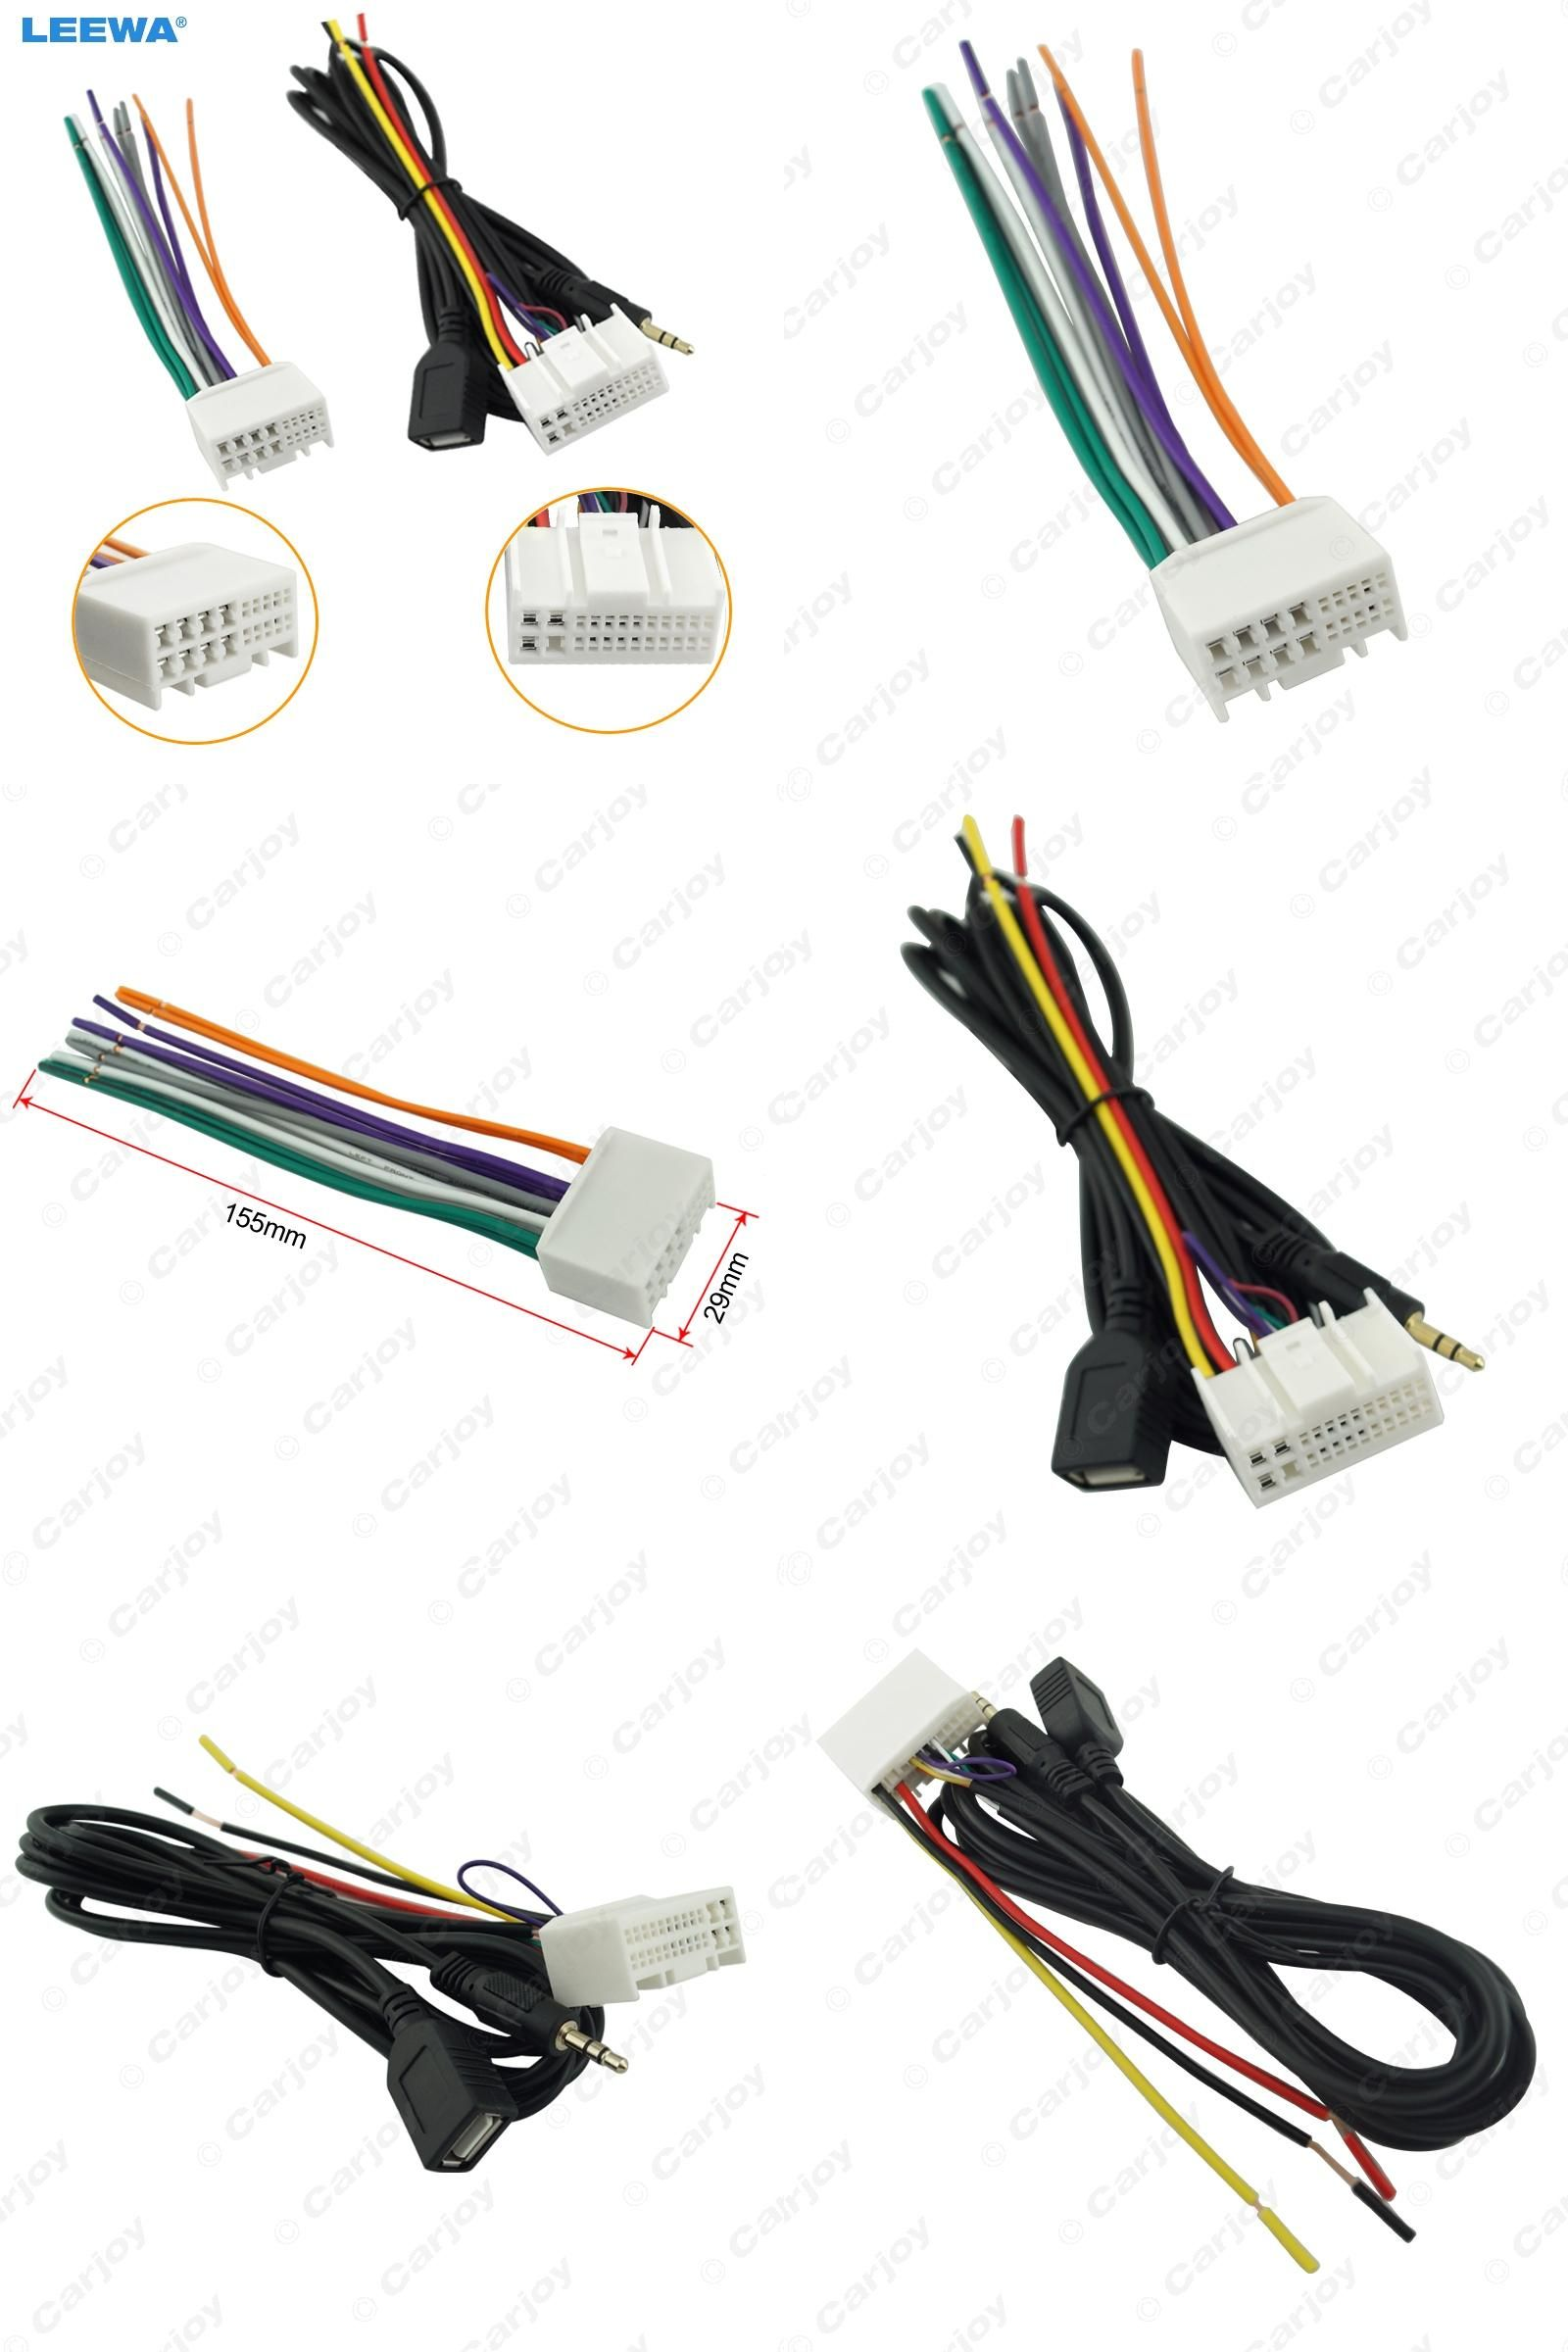 65bba15fb3a8d9bc4f1b698bf8827601 visit to buy] car audio cd stereo wiring harness adapter with usb where to buy a trailer wiring harness at aneh.co